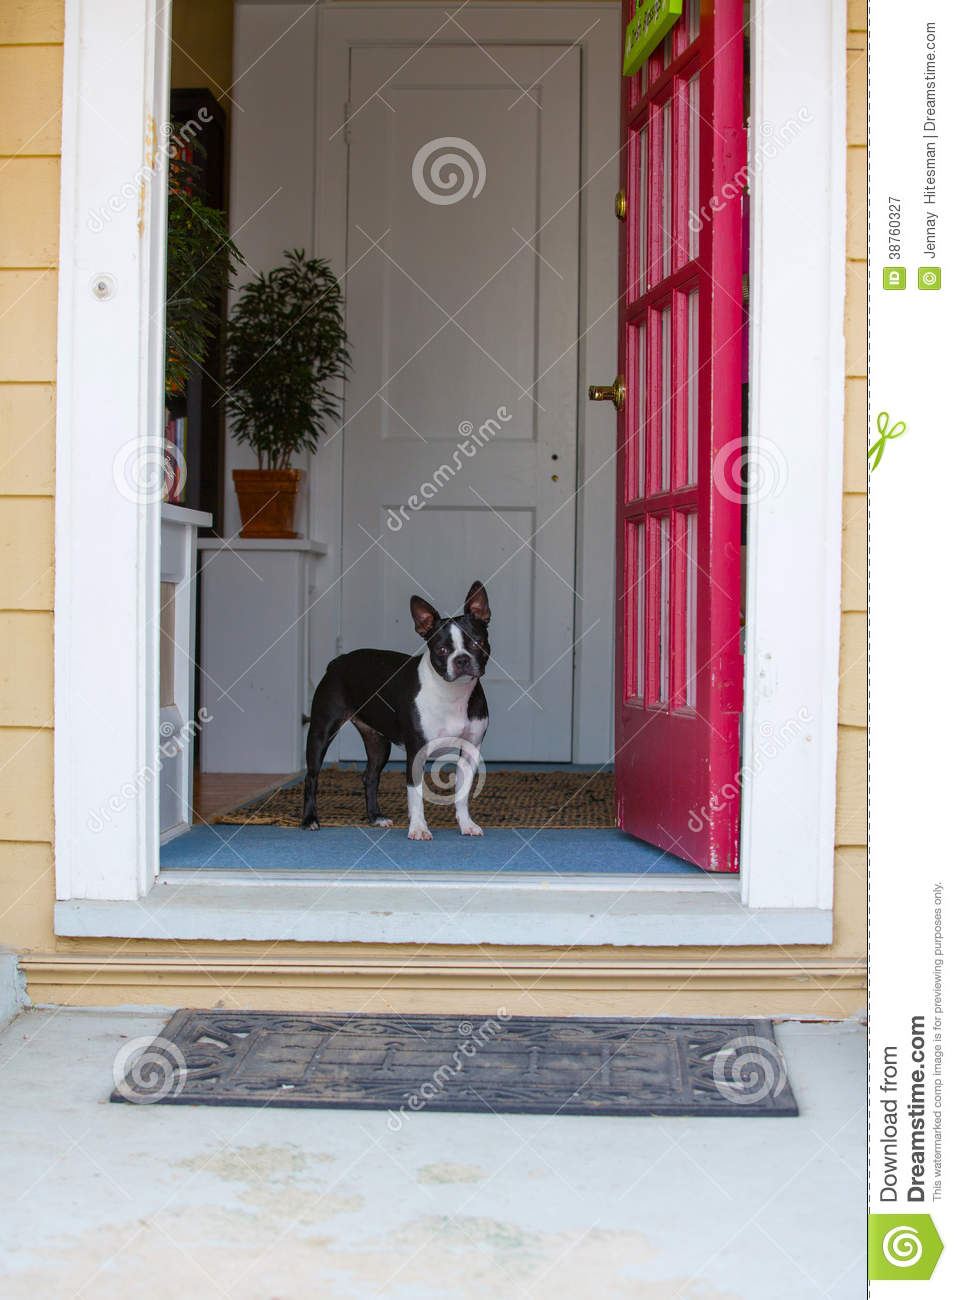 Dog Looking Out The Front Door Stock Image - Image: 38760327